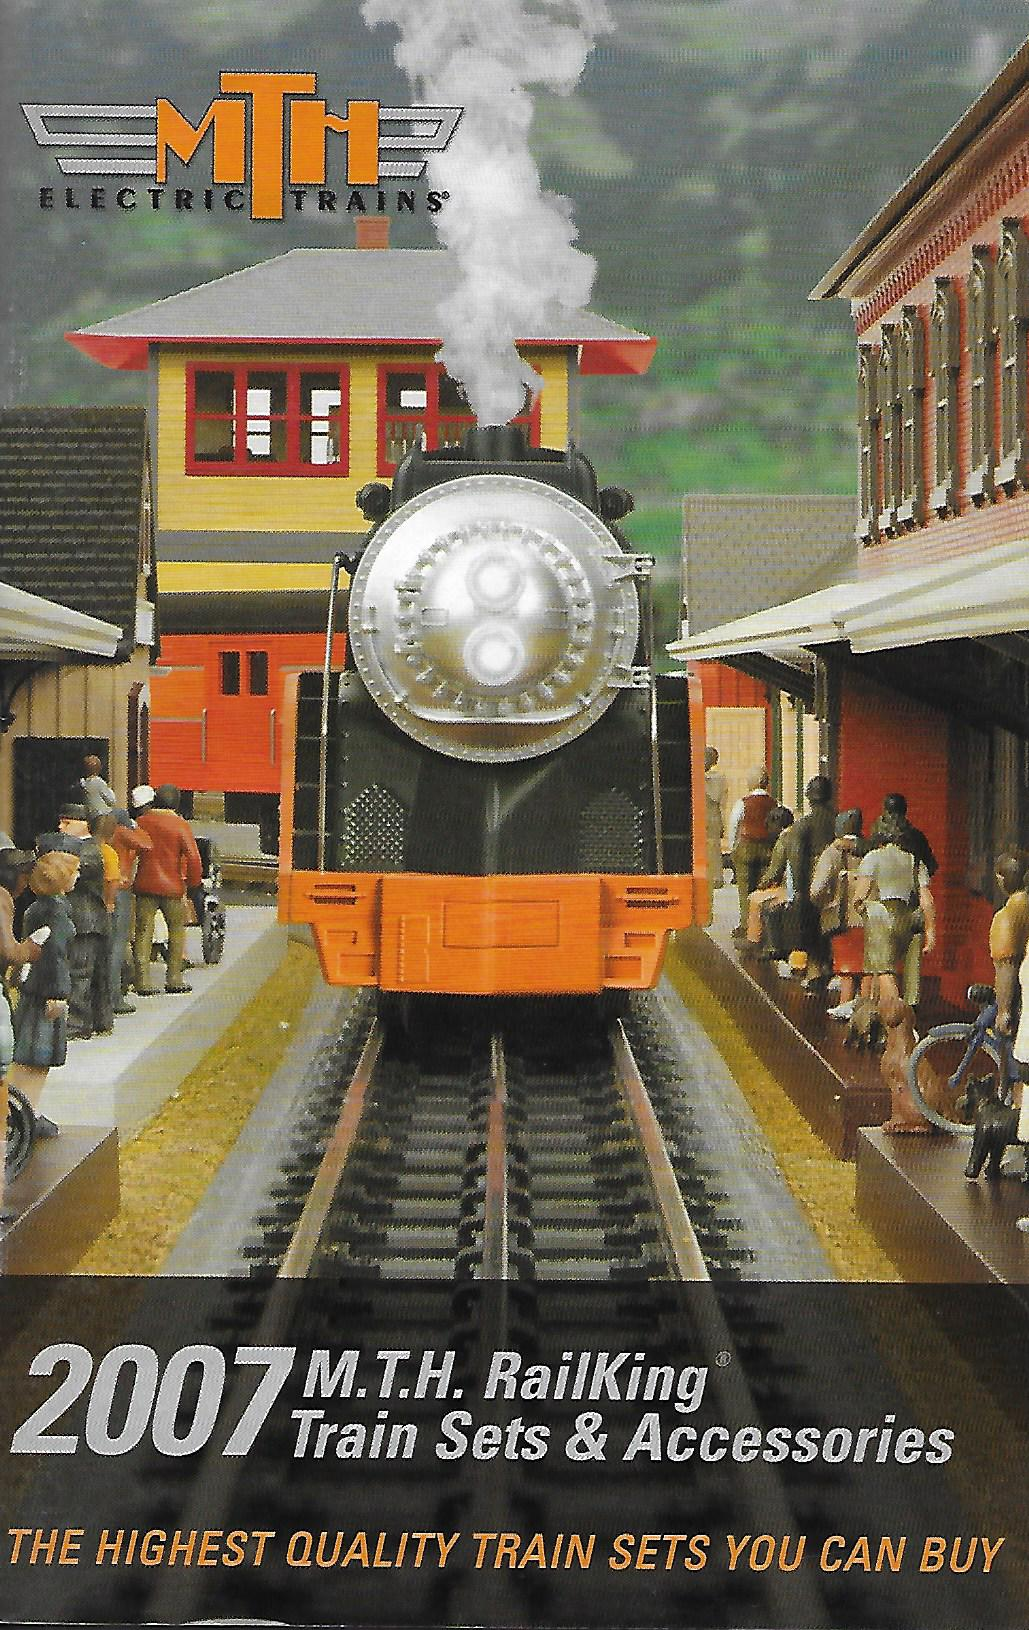 MTH 2007 RailKing Train Sets & Accessories Catalog image